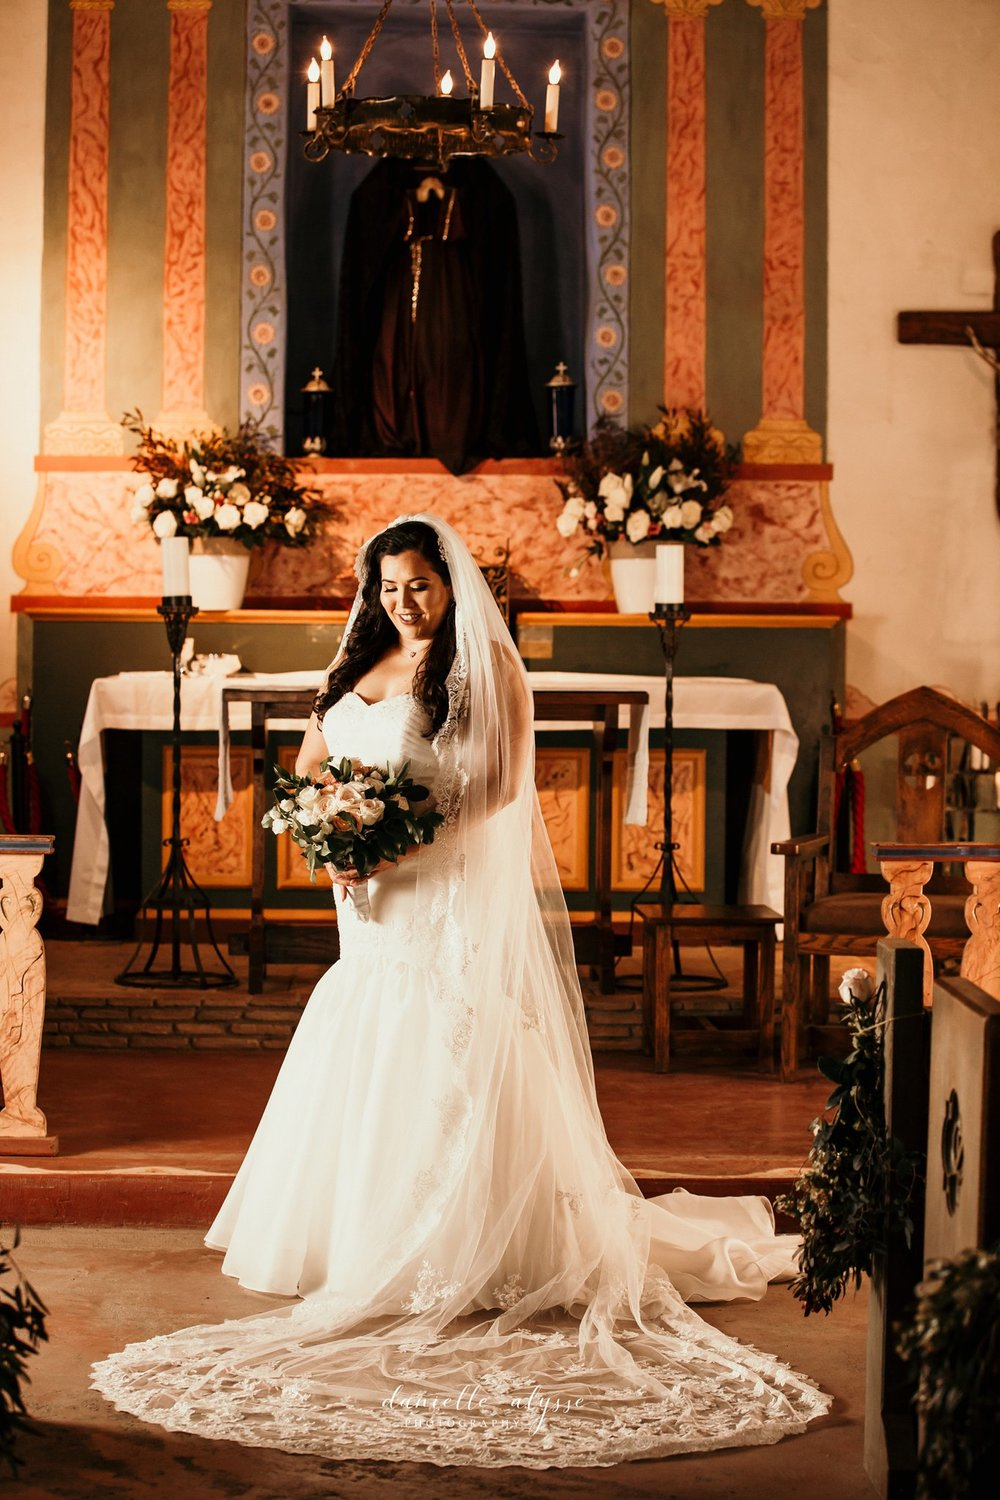 180630_wedding_lily_ryan_mission_soledad_california_danielle_alysse_photography_blog_232_WEB.jpg